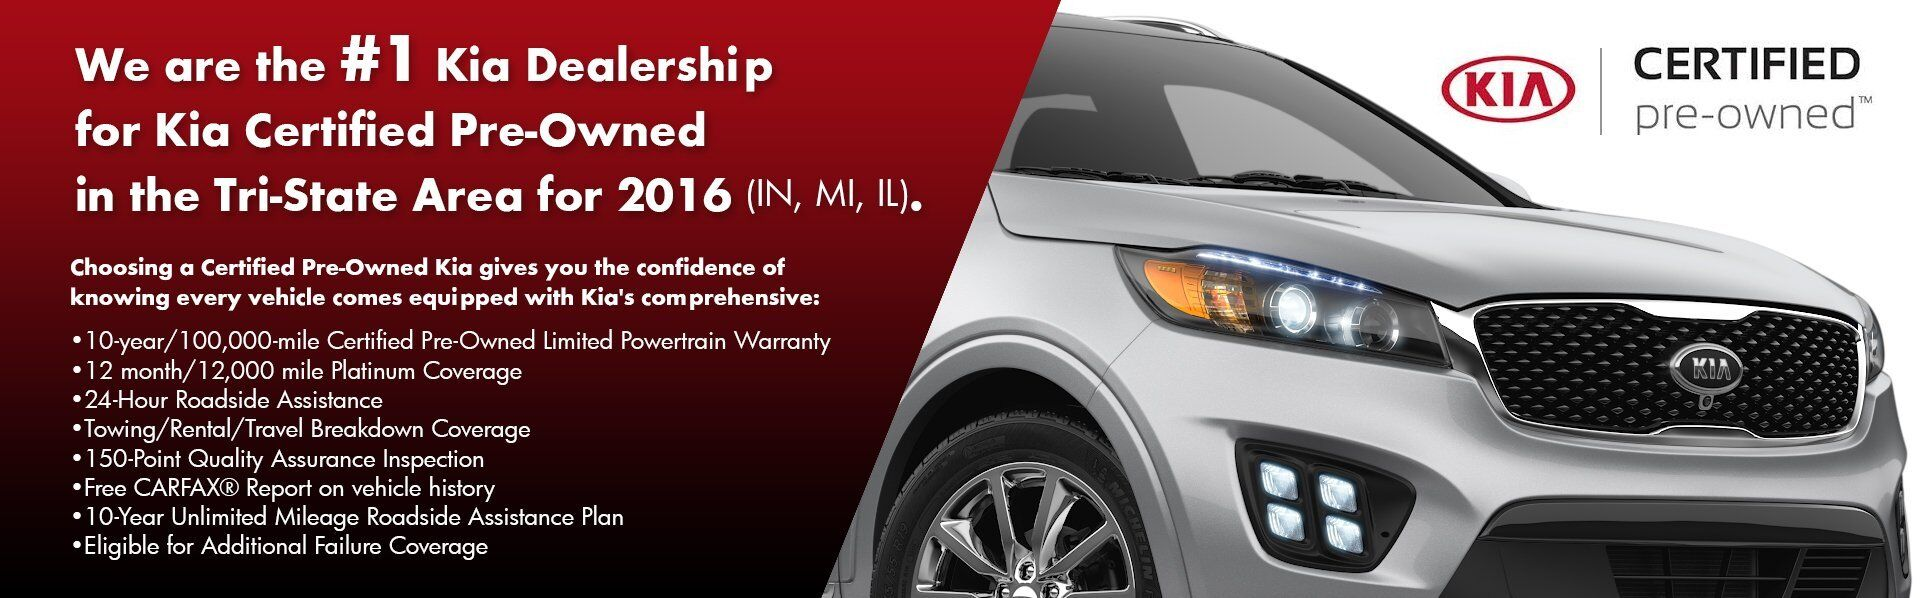 #1 Kia Dealership for Kia Certified Pre-Owned